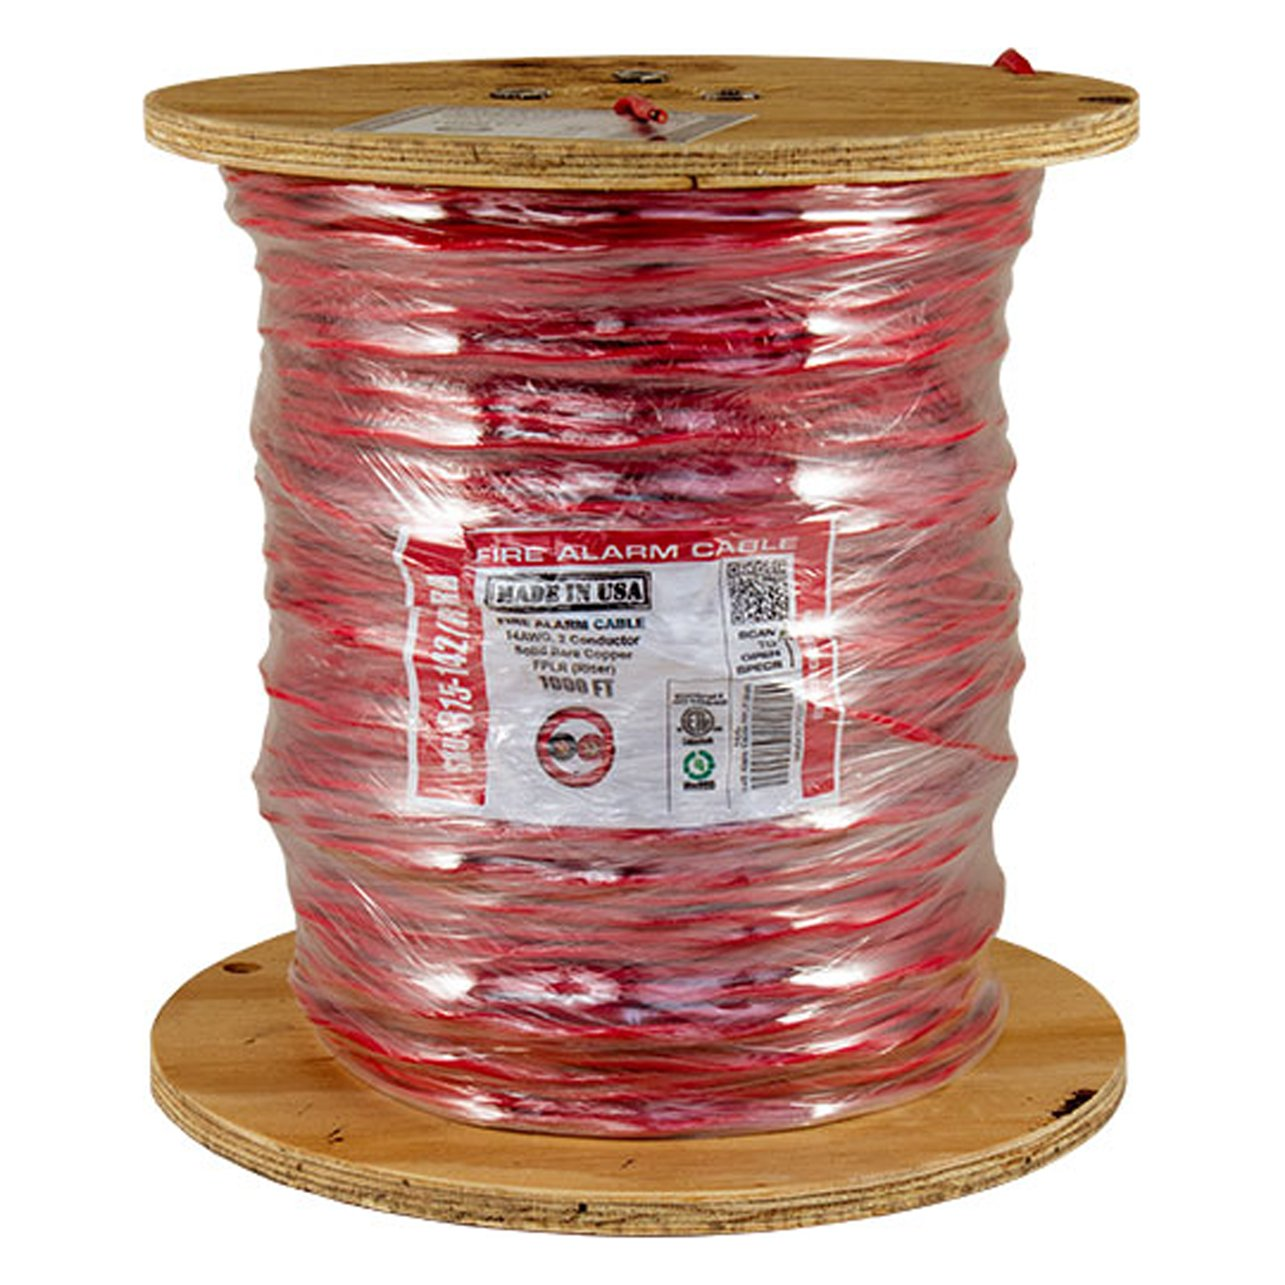 Vertical Cable Fire Alarm Cable, 14 AWG, 2 Conductor, Solid, Unshielded, FPLR (Riser), 1000ft Spool, Red - Made in USA